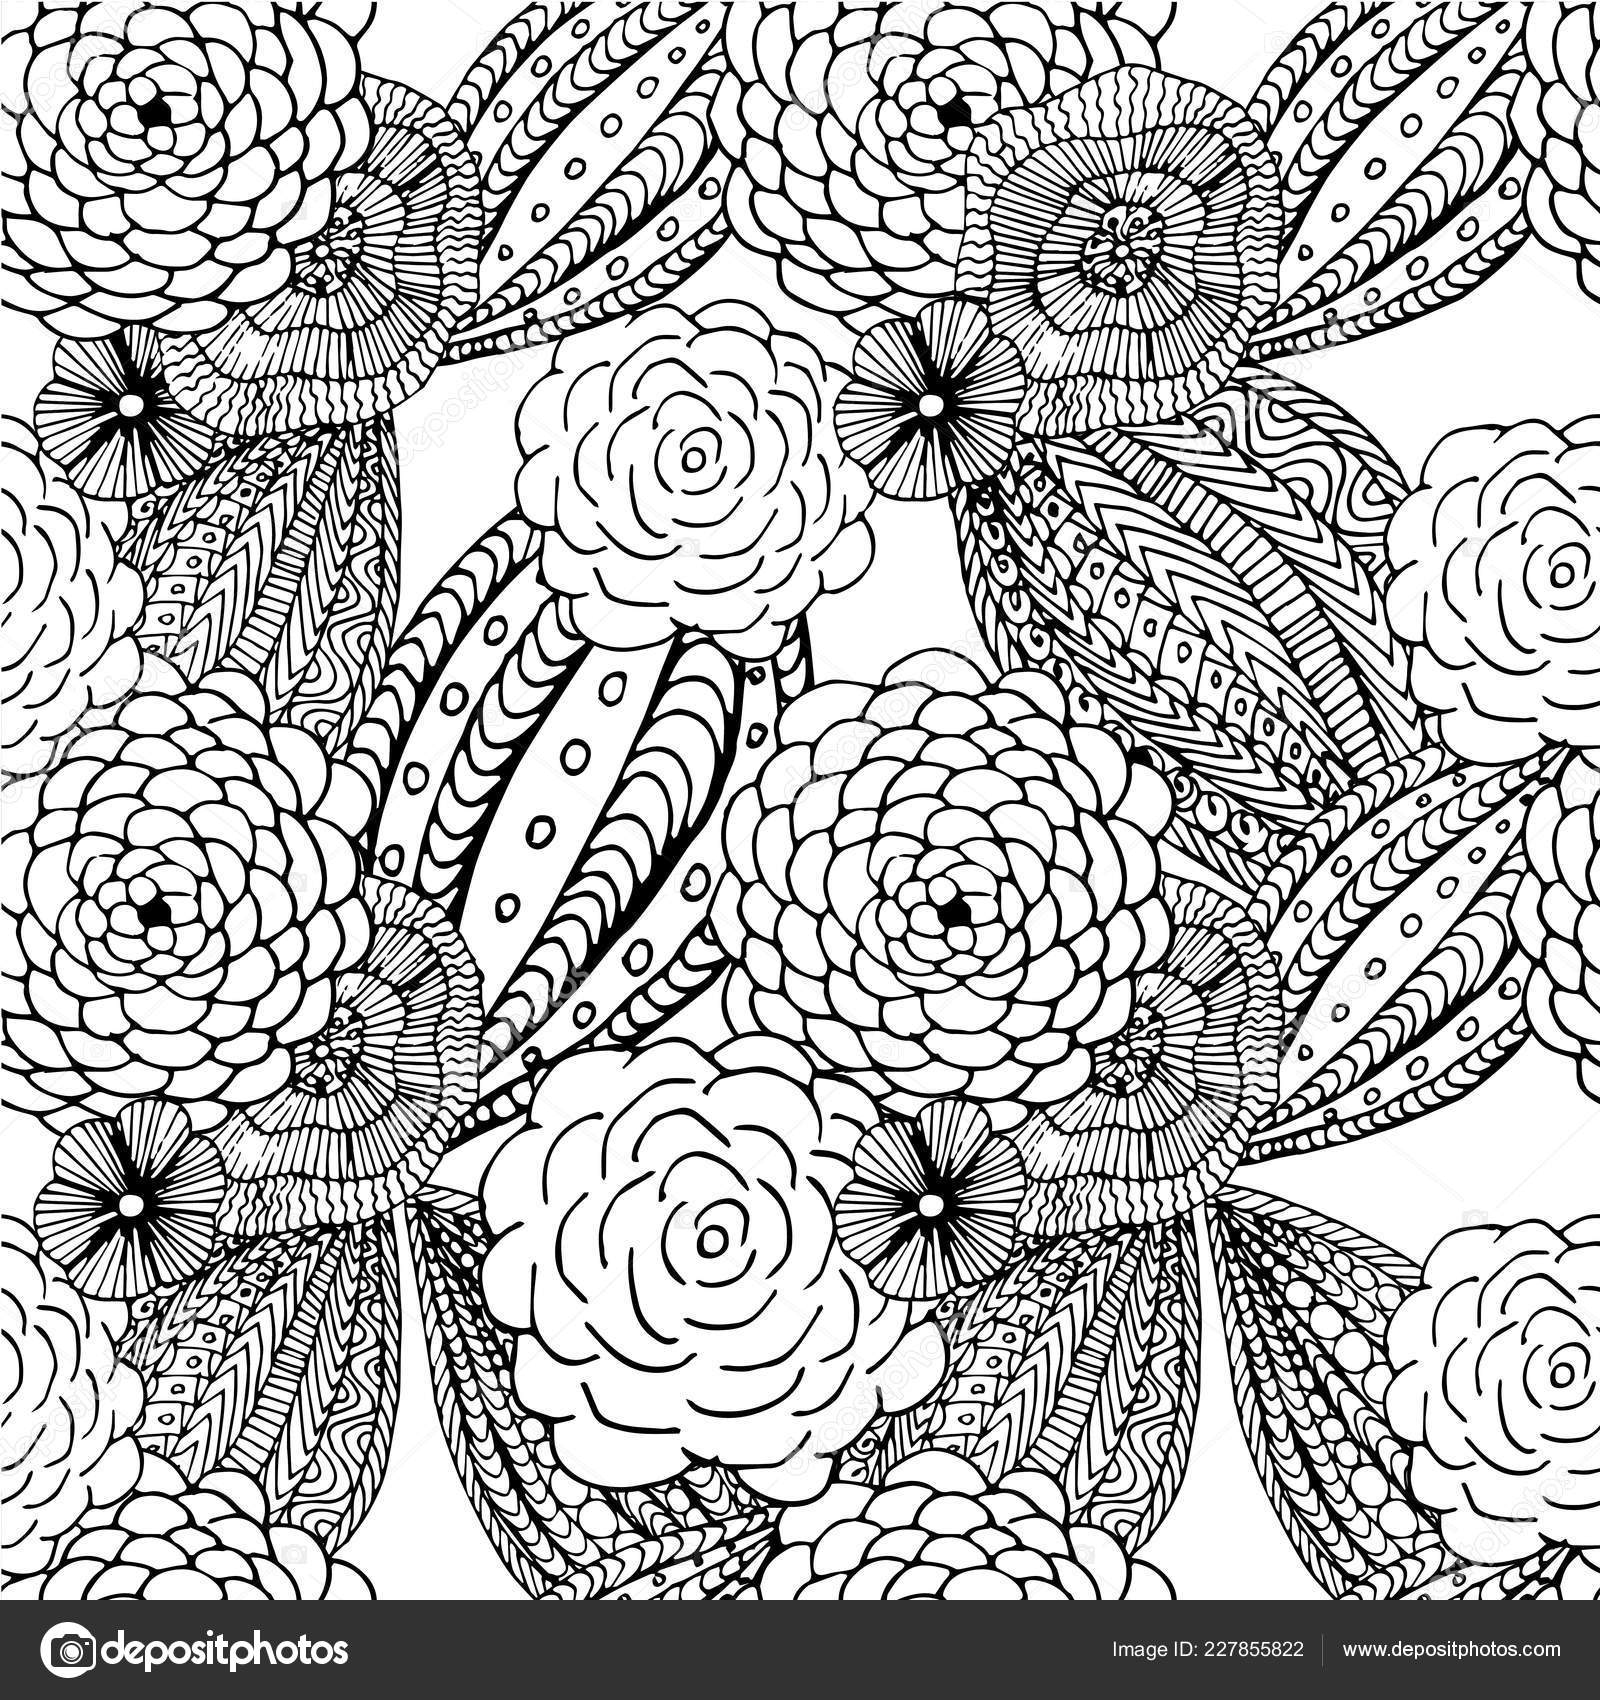 Floral Seamless Pattern Coloring Book Antistress Page Hand Drawn Design Stock Vector C Katimus Ukr Net 227855822